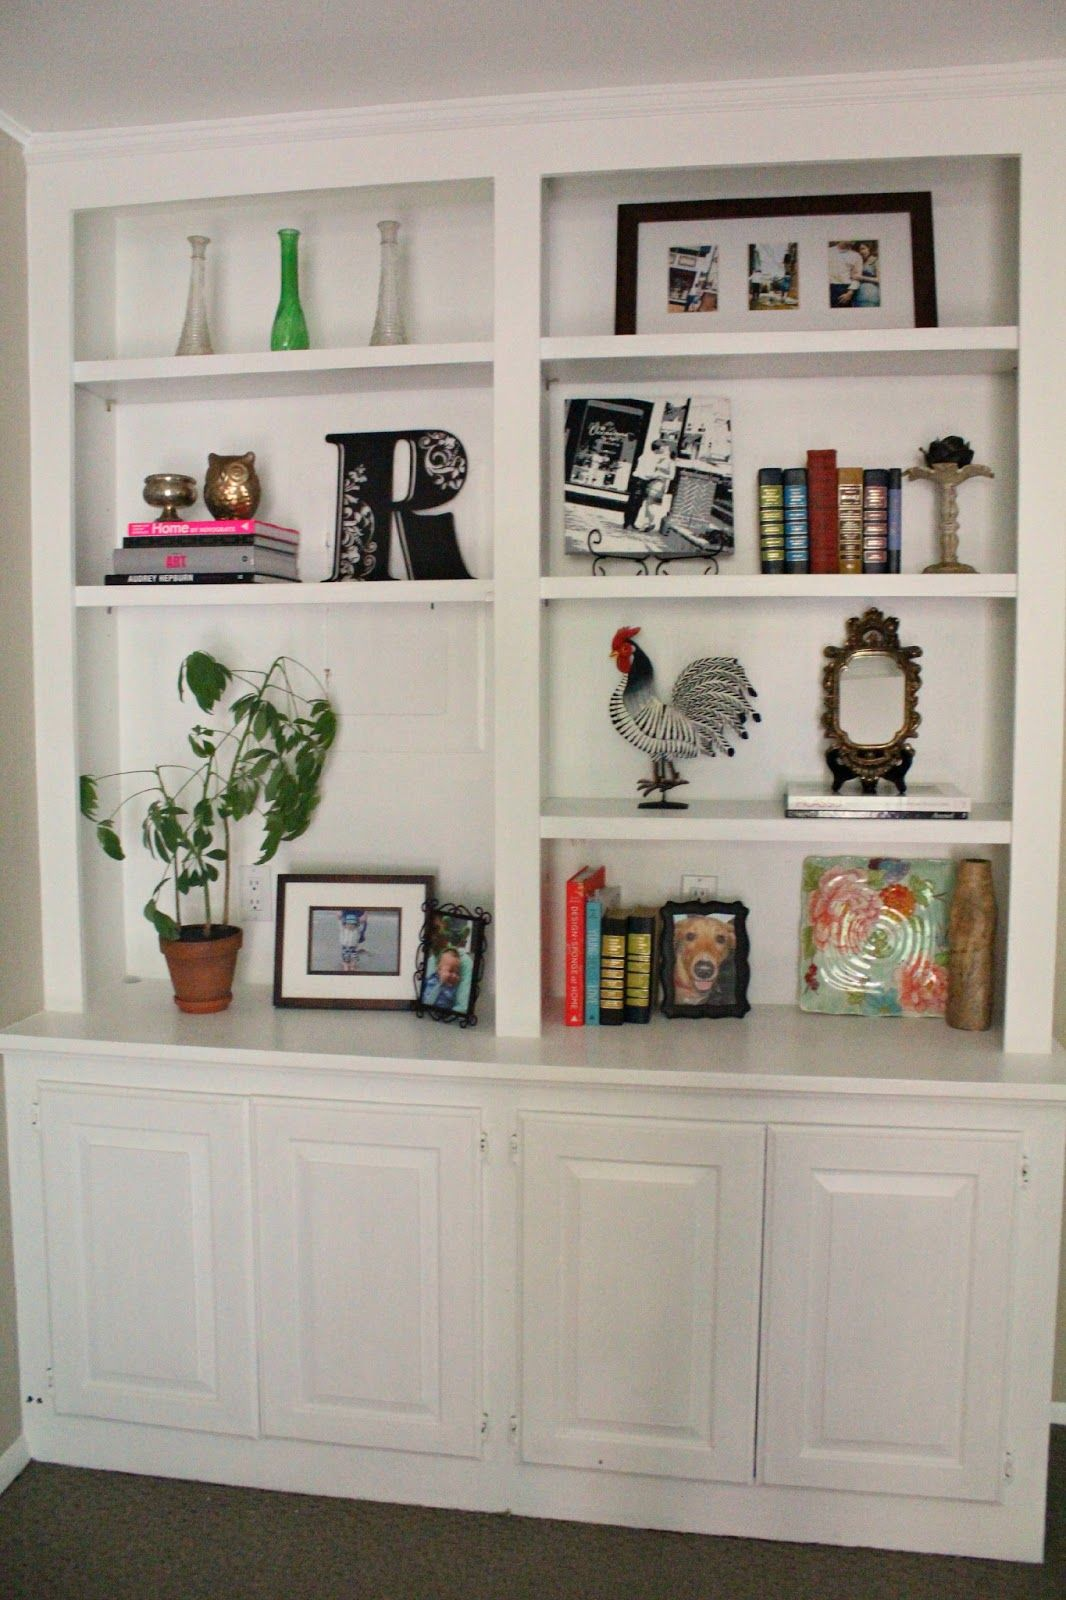 My Living Room Built In Bookshelves Are Styled Almost